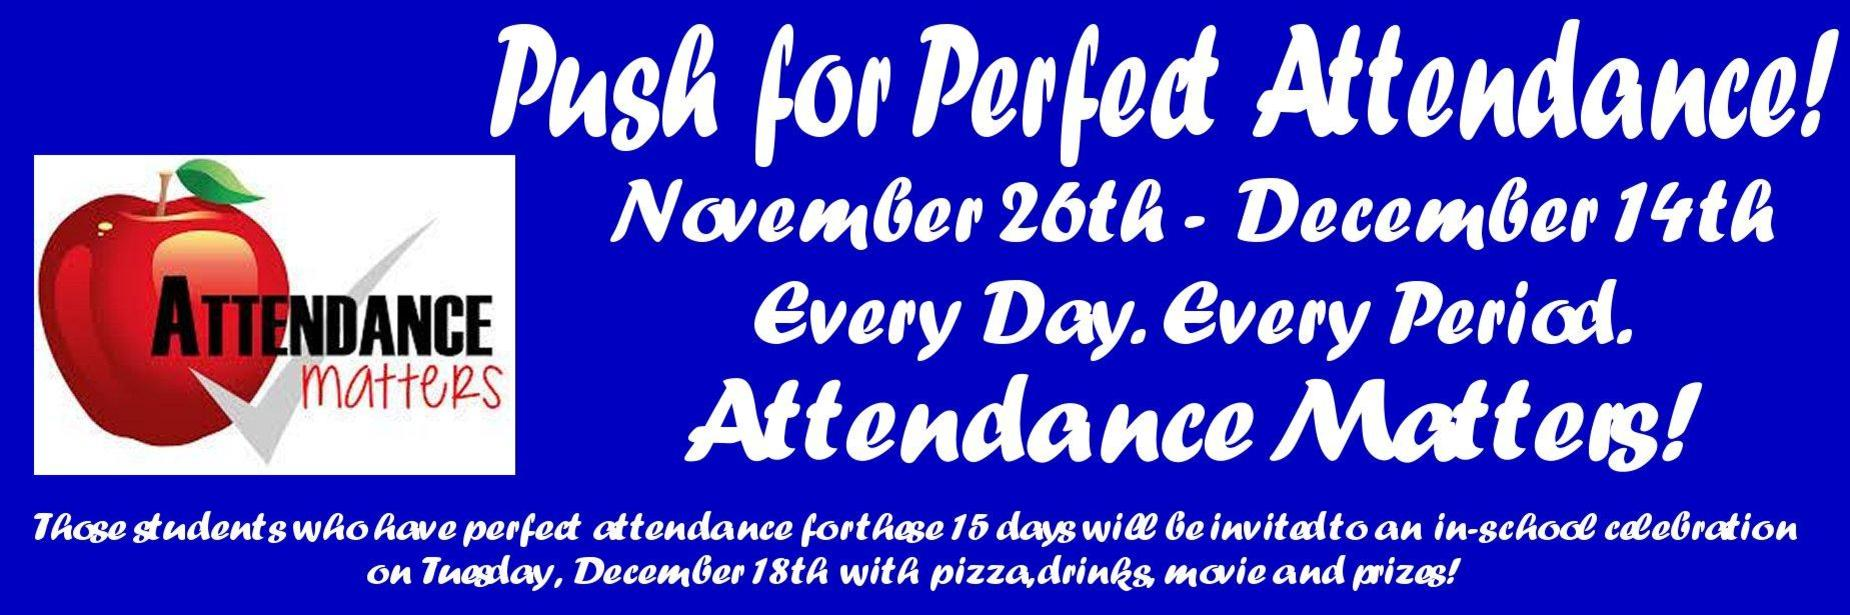 Push for Perfect Attendance Event